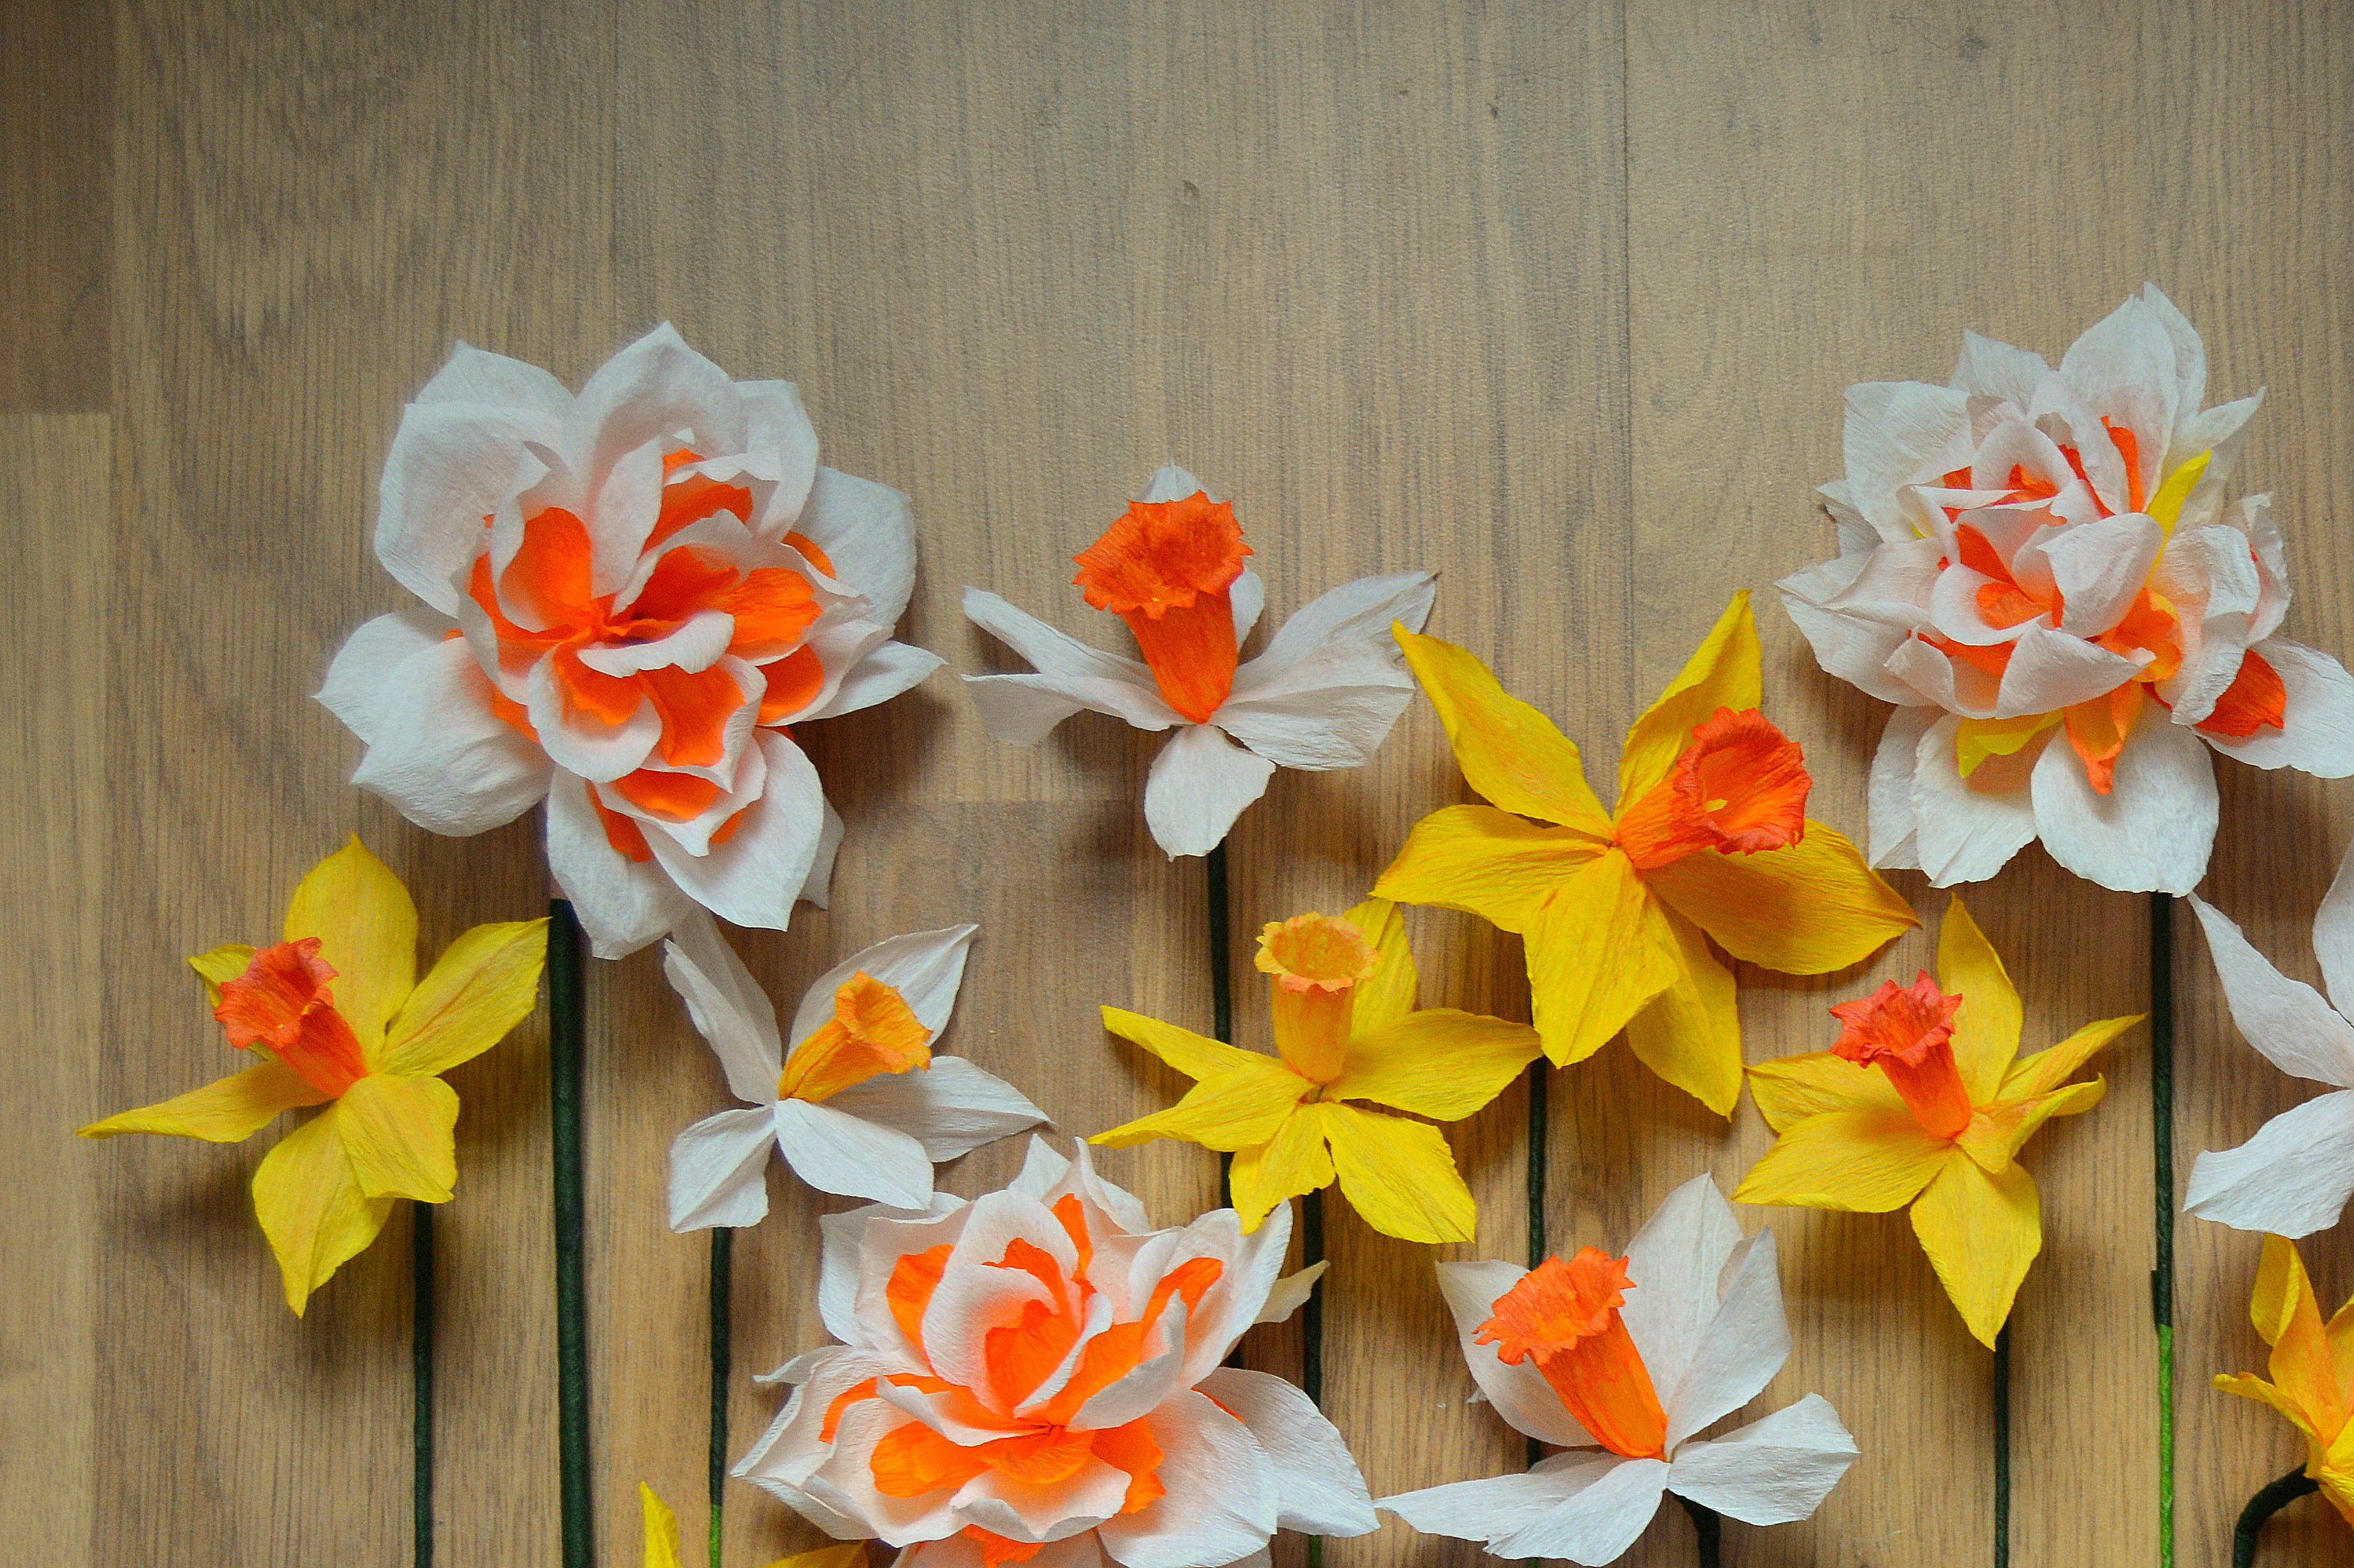 A mixture of paper daffodils